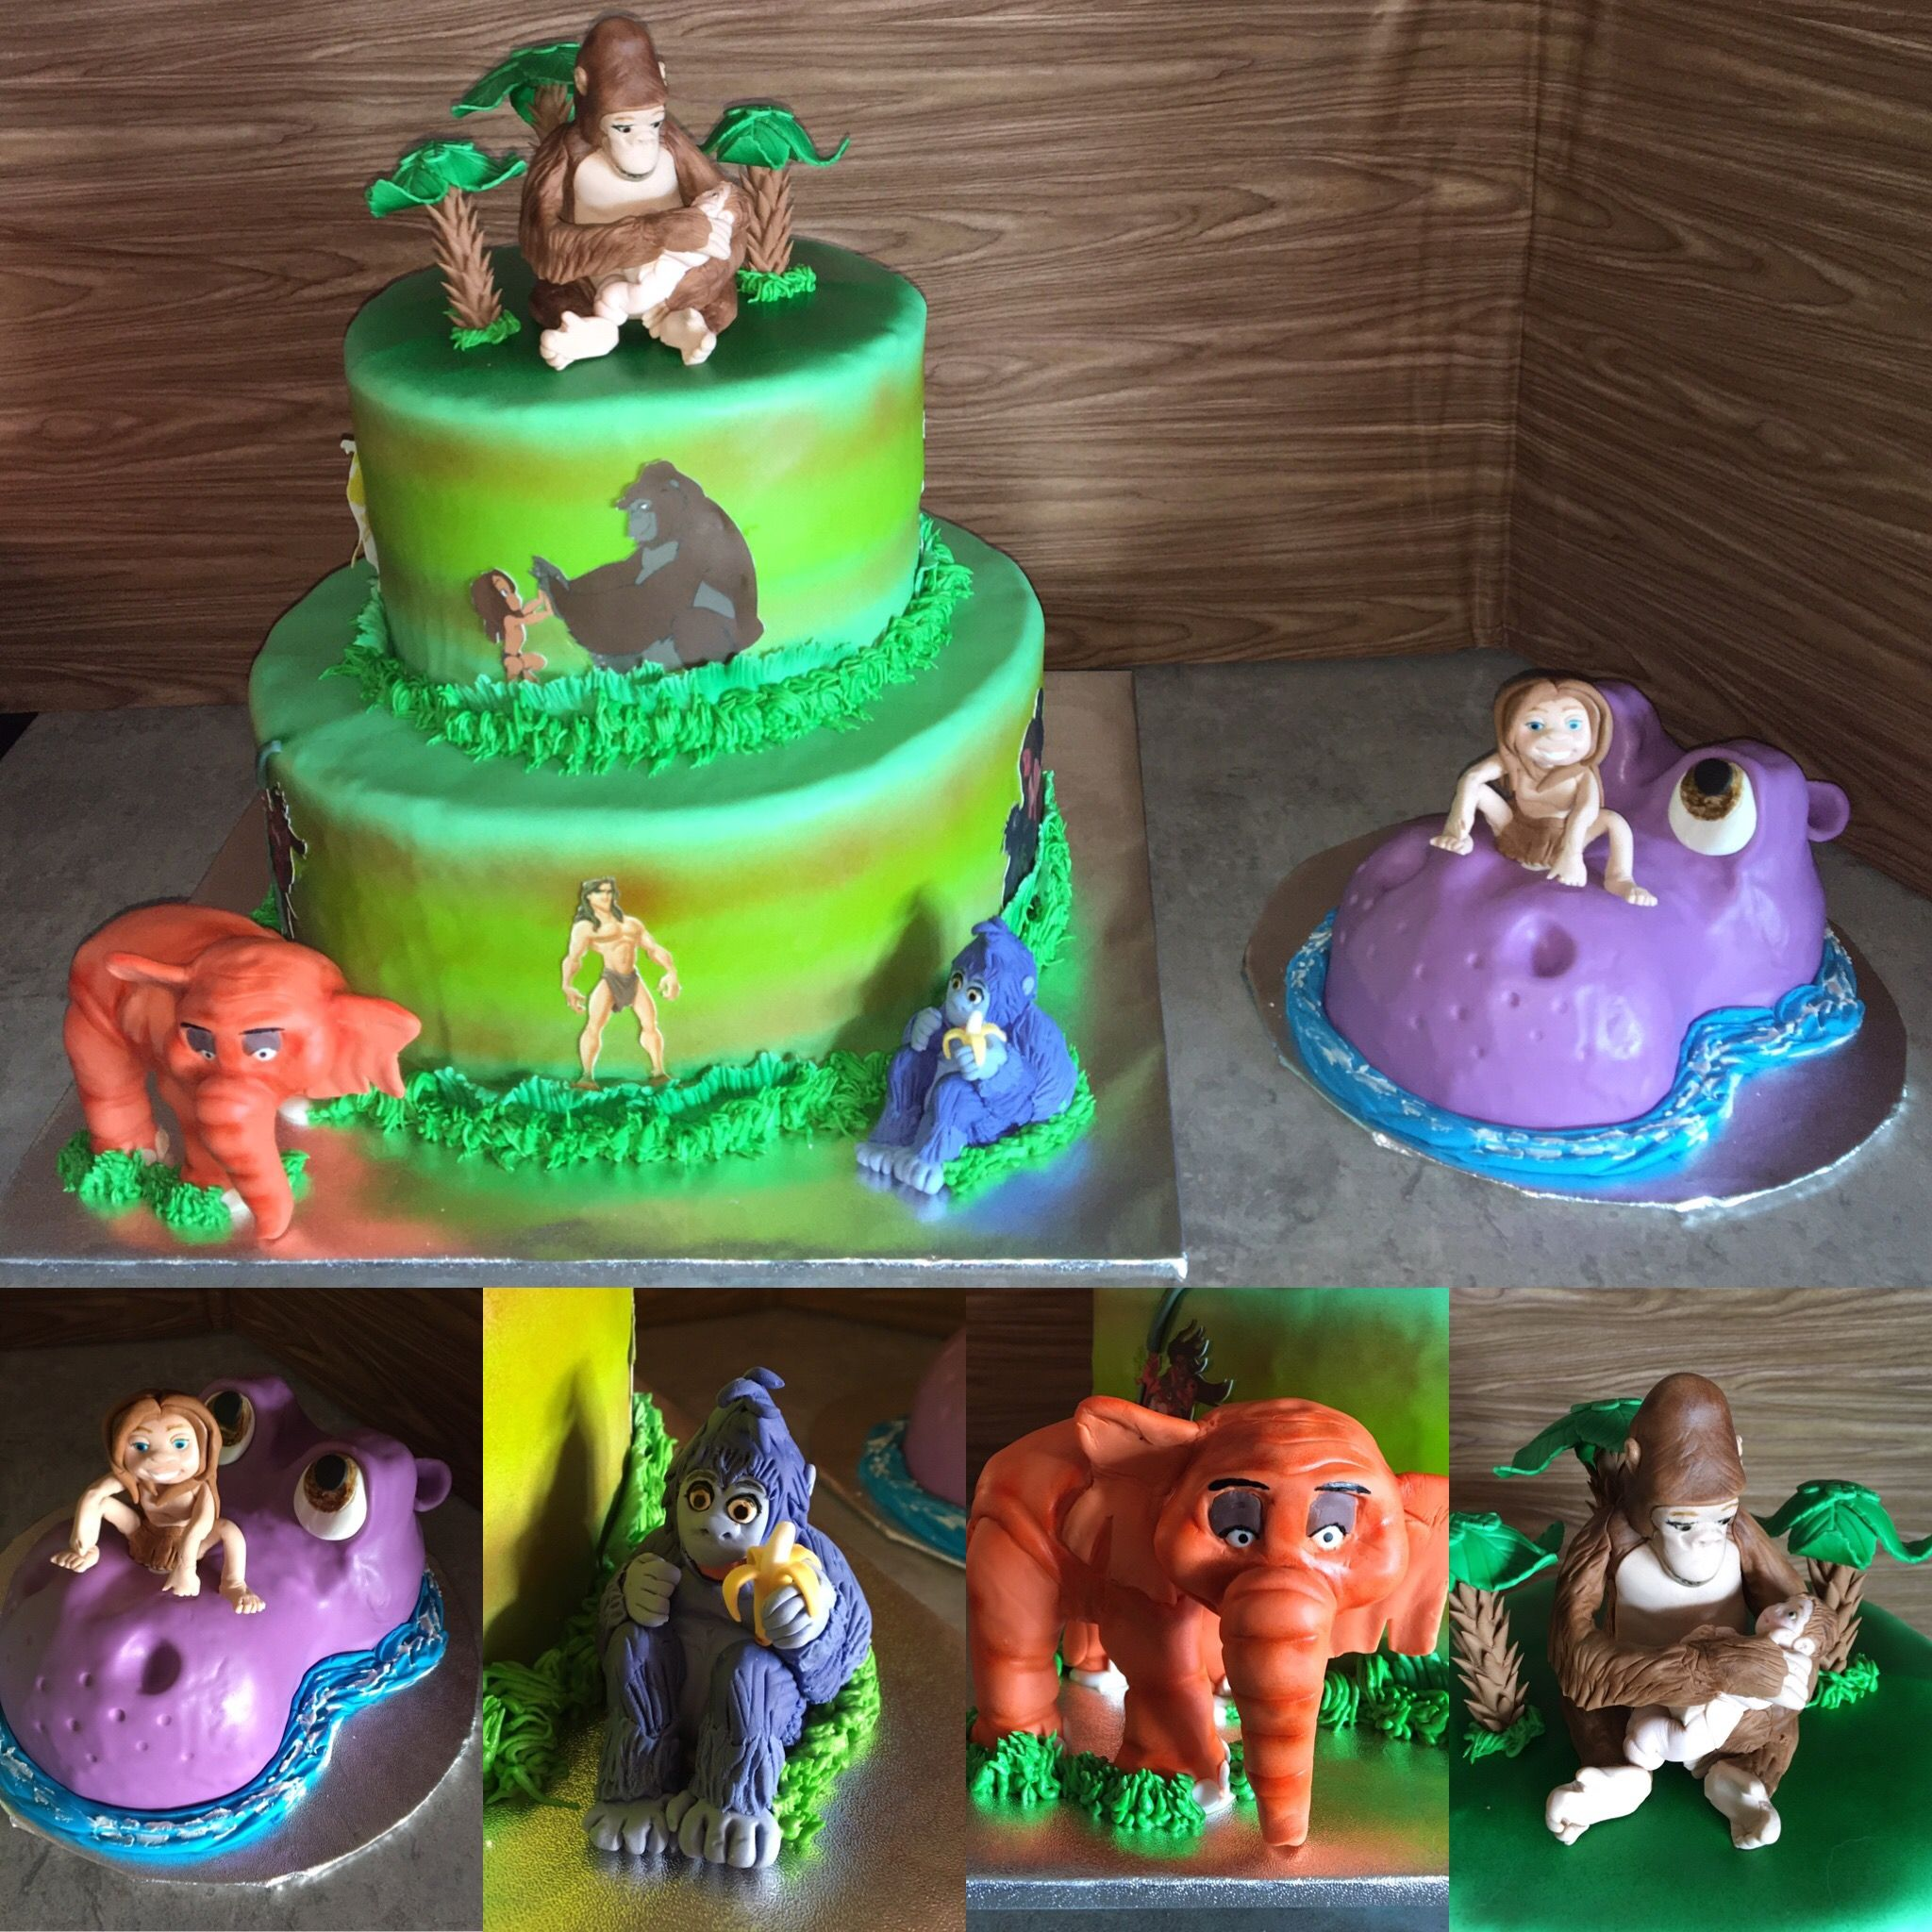 Disney Tarzan cake with smasher cake. All figures are made of ...